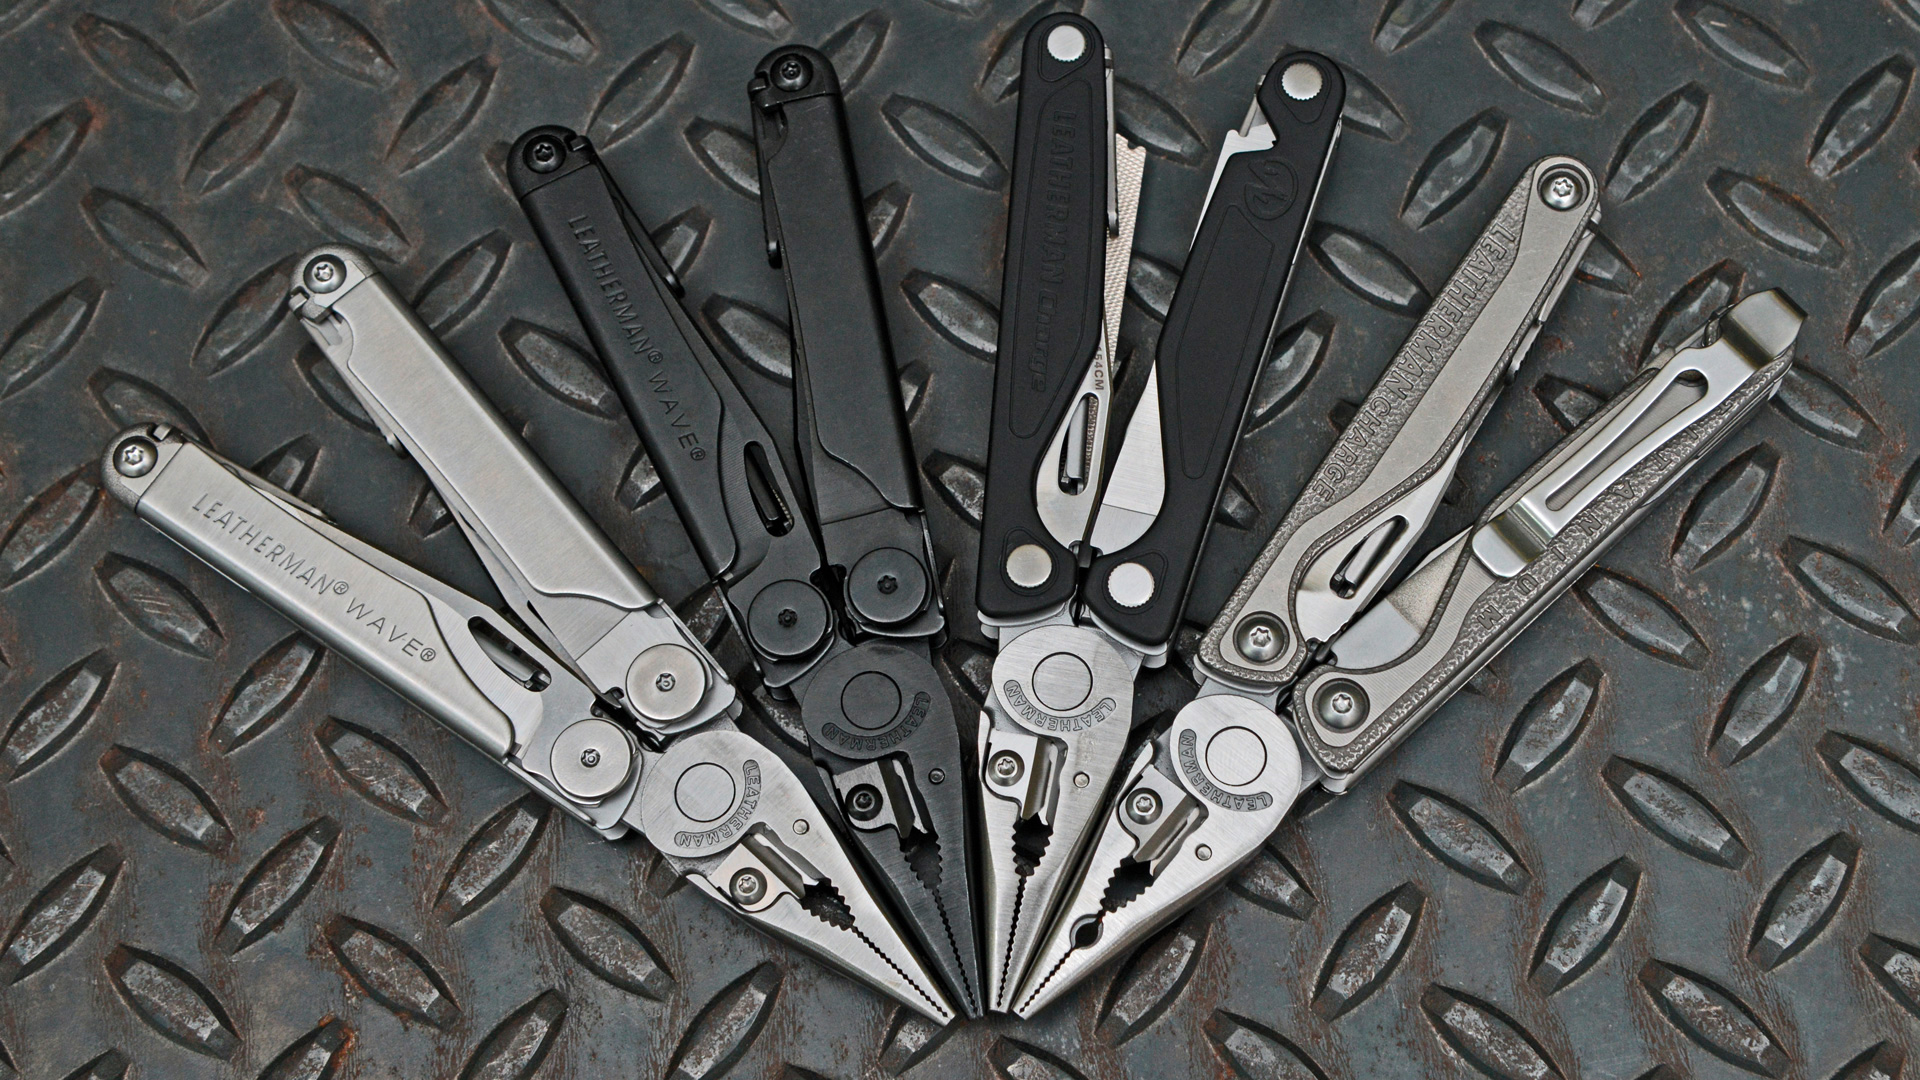 29cd458431a Leatherman Wave Charge Tti Frag Out Magazine. Leatherman. Leatherman.  Leatherman. Leatherman Multi Tools Knives And Pockettools At Knifecenter